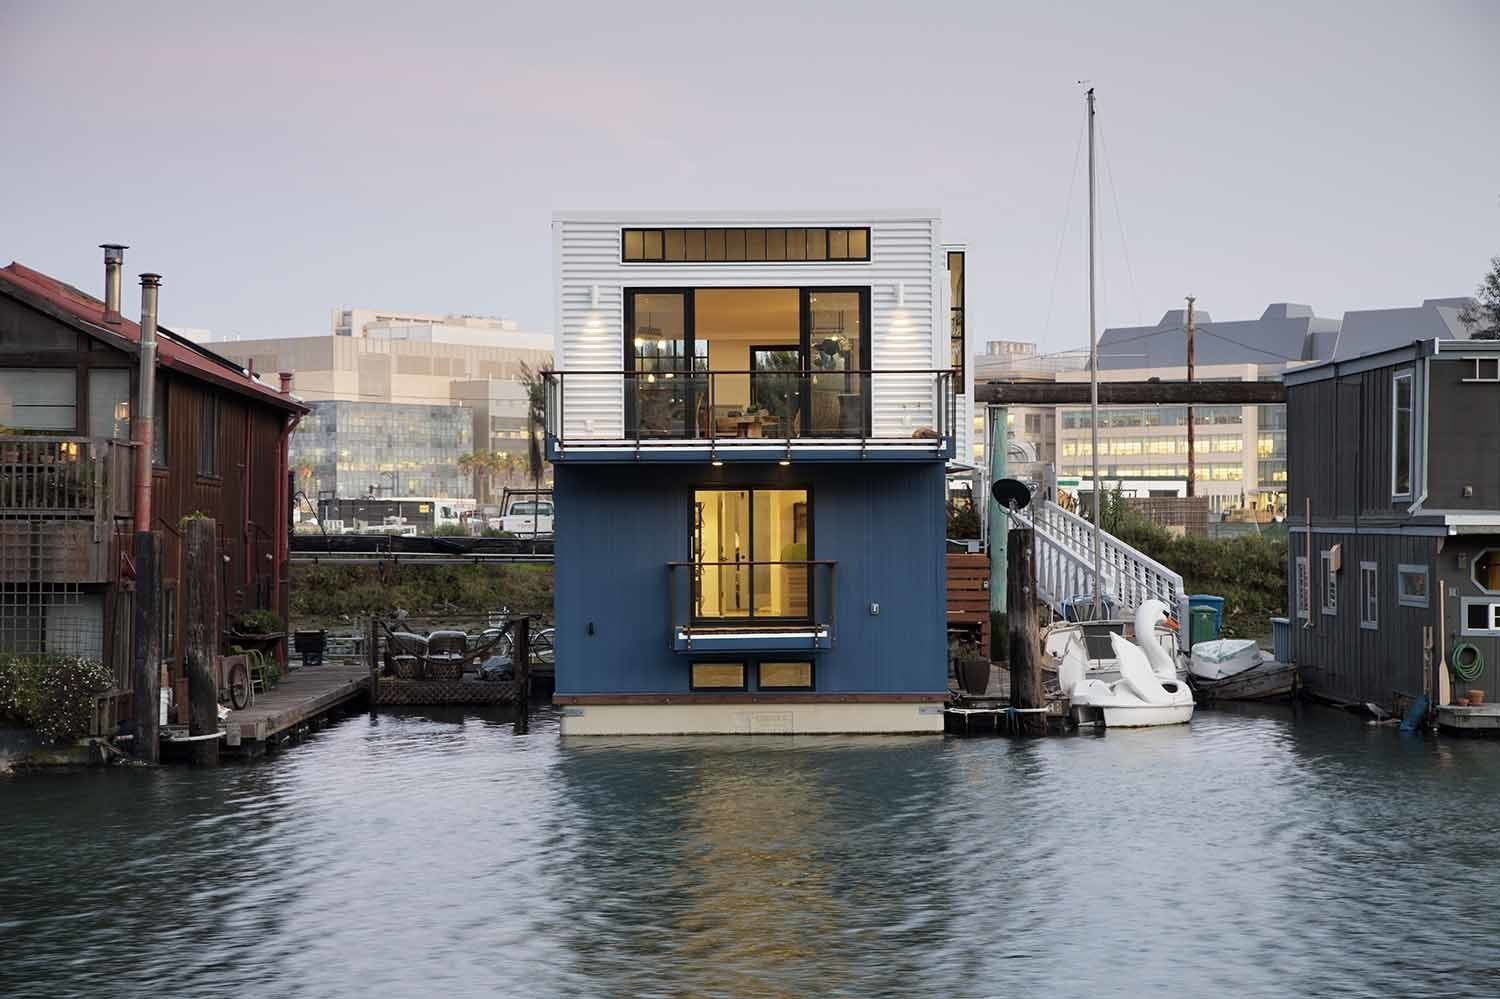 """""""By creating high ceilings with large windows, the feeling is all about space and light,"""" says architect Robert Nebolon, principal of Berkeley firm Robert Nebolon Architects. The 2,100-square-foot floating house was built on land in six months before settling into its final location in Mission Creek. Tagged: Exterior and Boathouse Building Type.  Best Photos from Like a Loft on Water"""